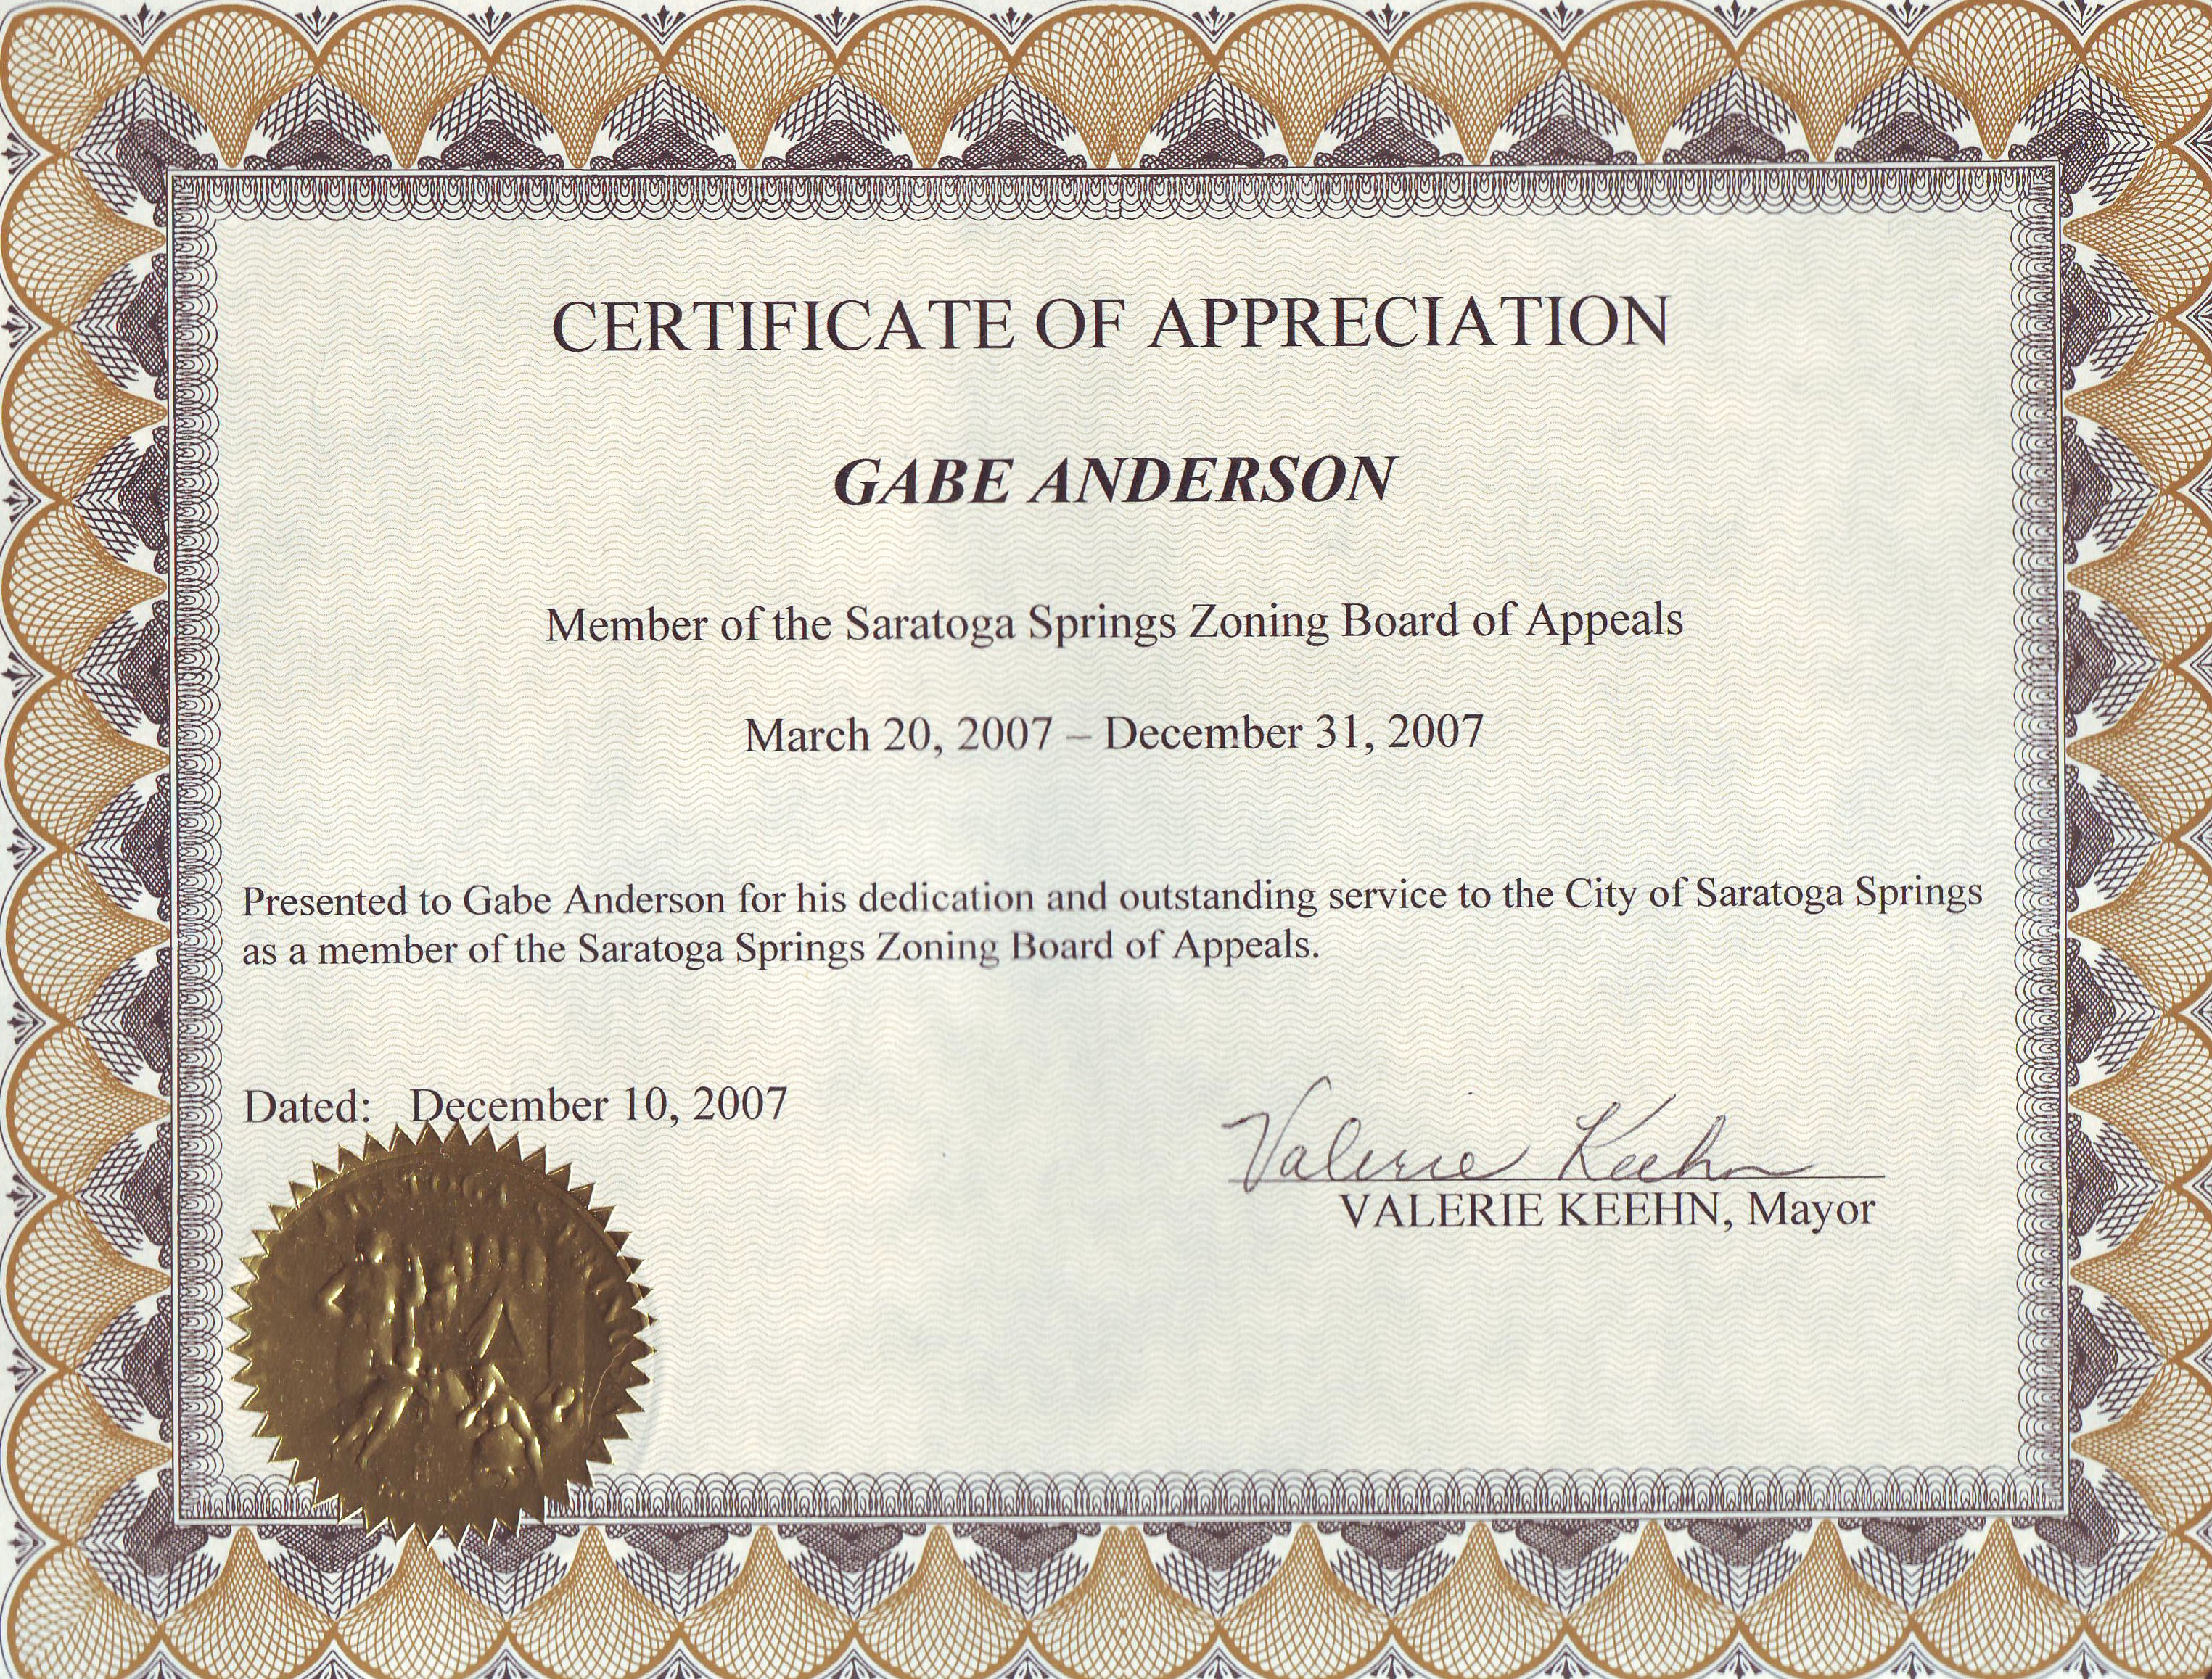 Appreciation Certificate Templates for Word Unique Certificate Appreciation Template Word Doc